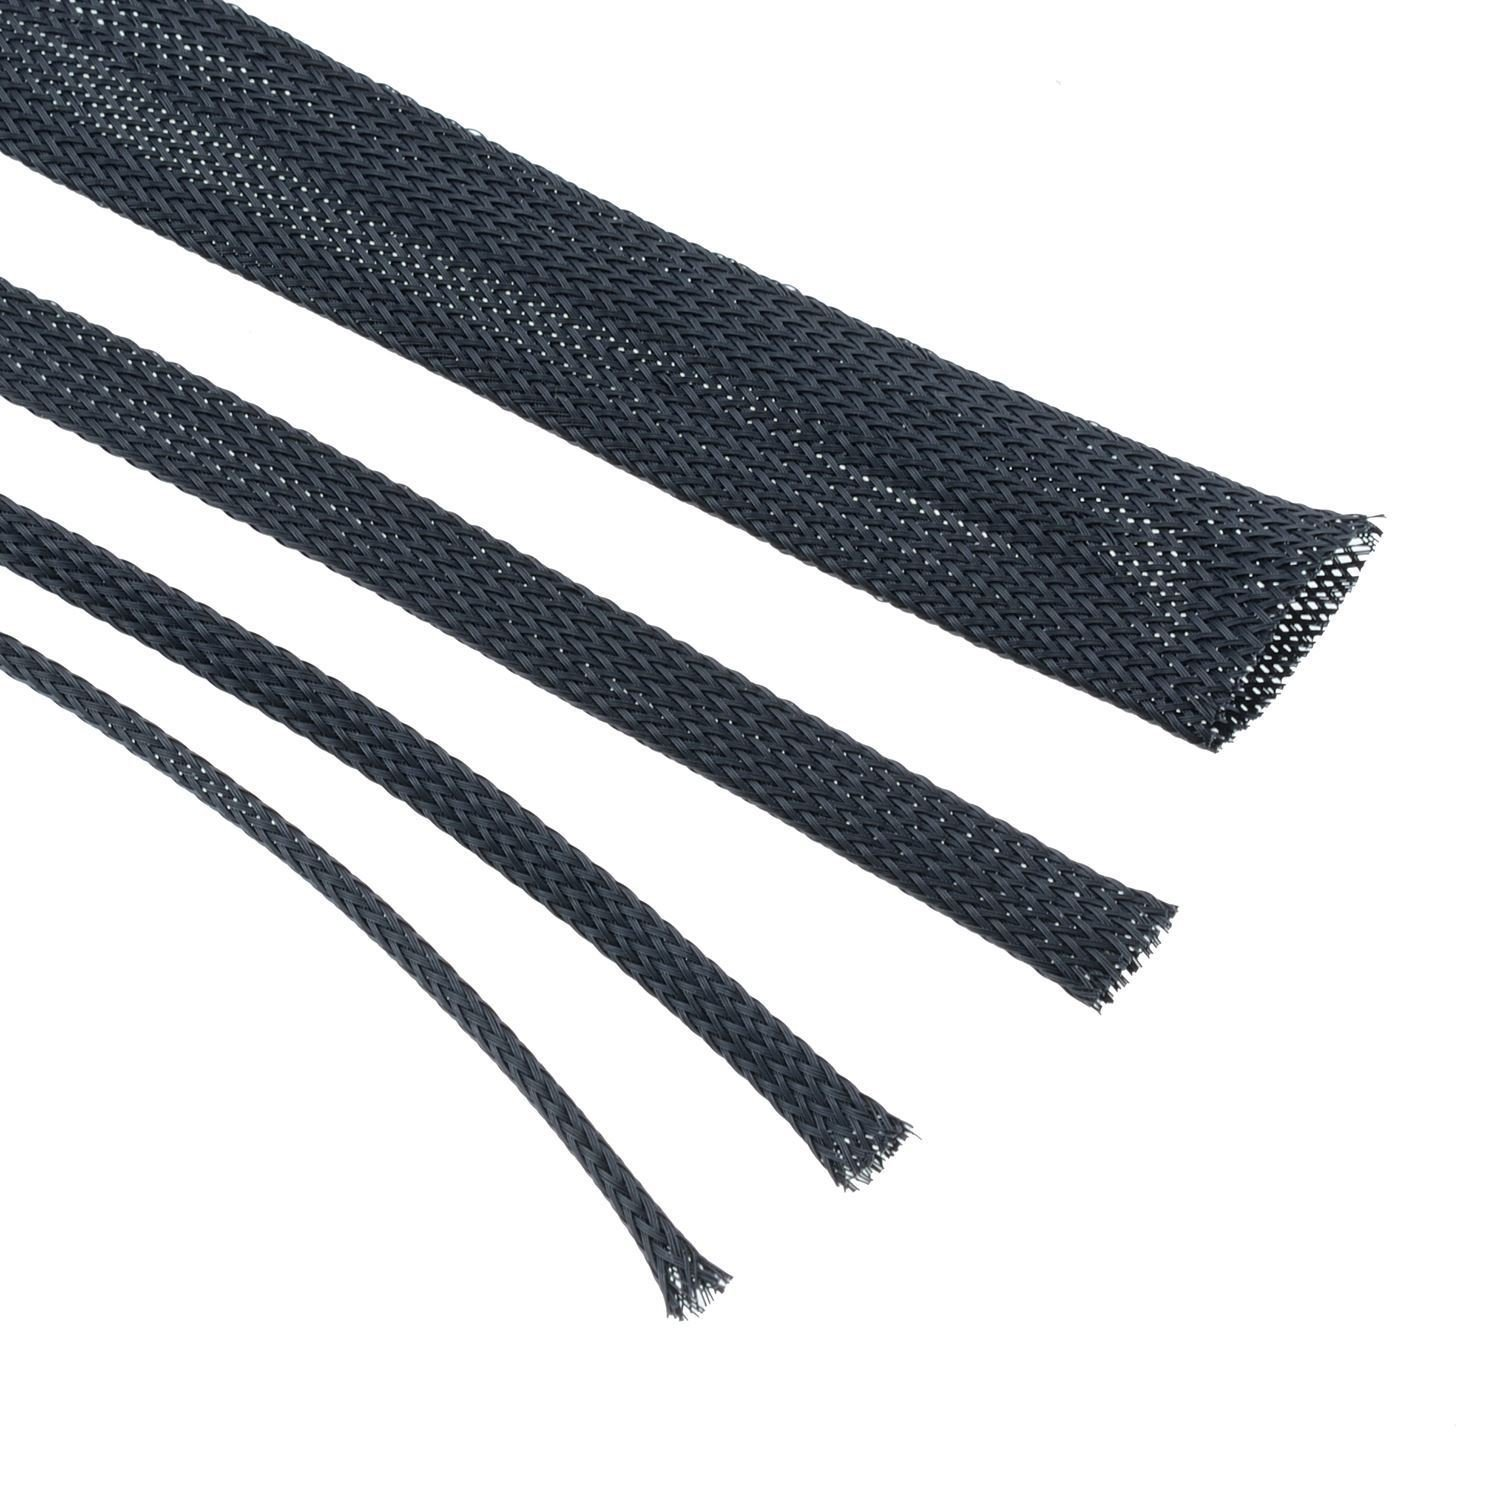 0.375Inch Harness Tech 1 Inch Clean Cut Braided Cable Sleeve 25 Ft Black